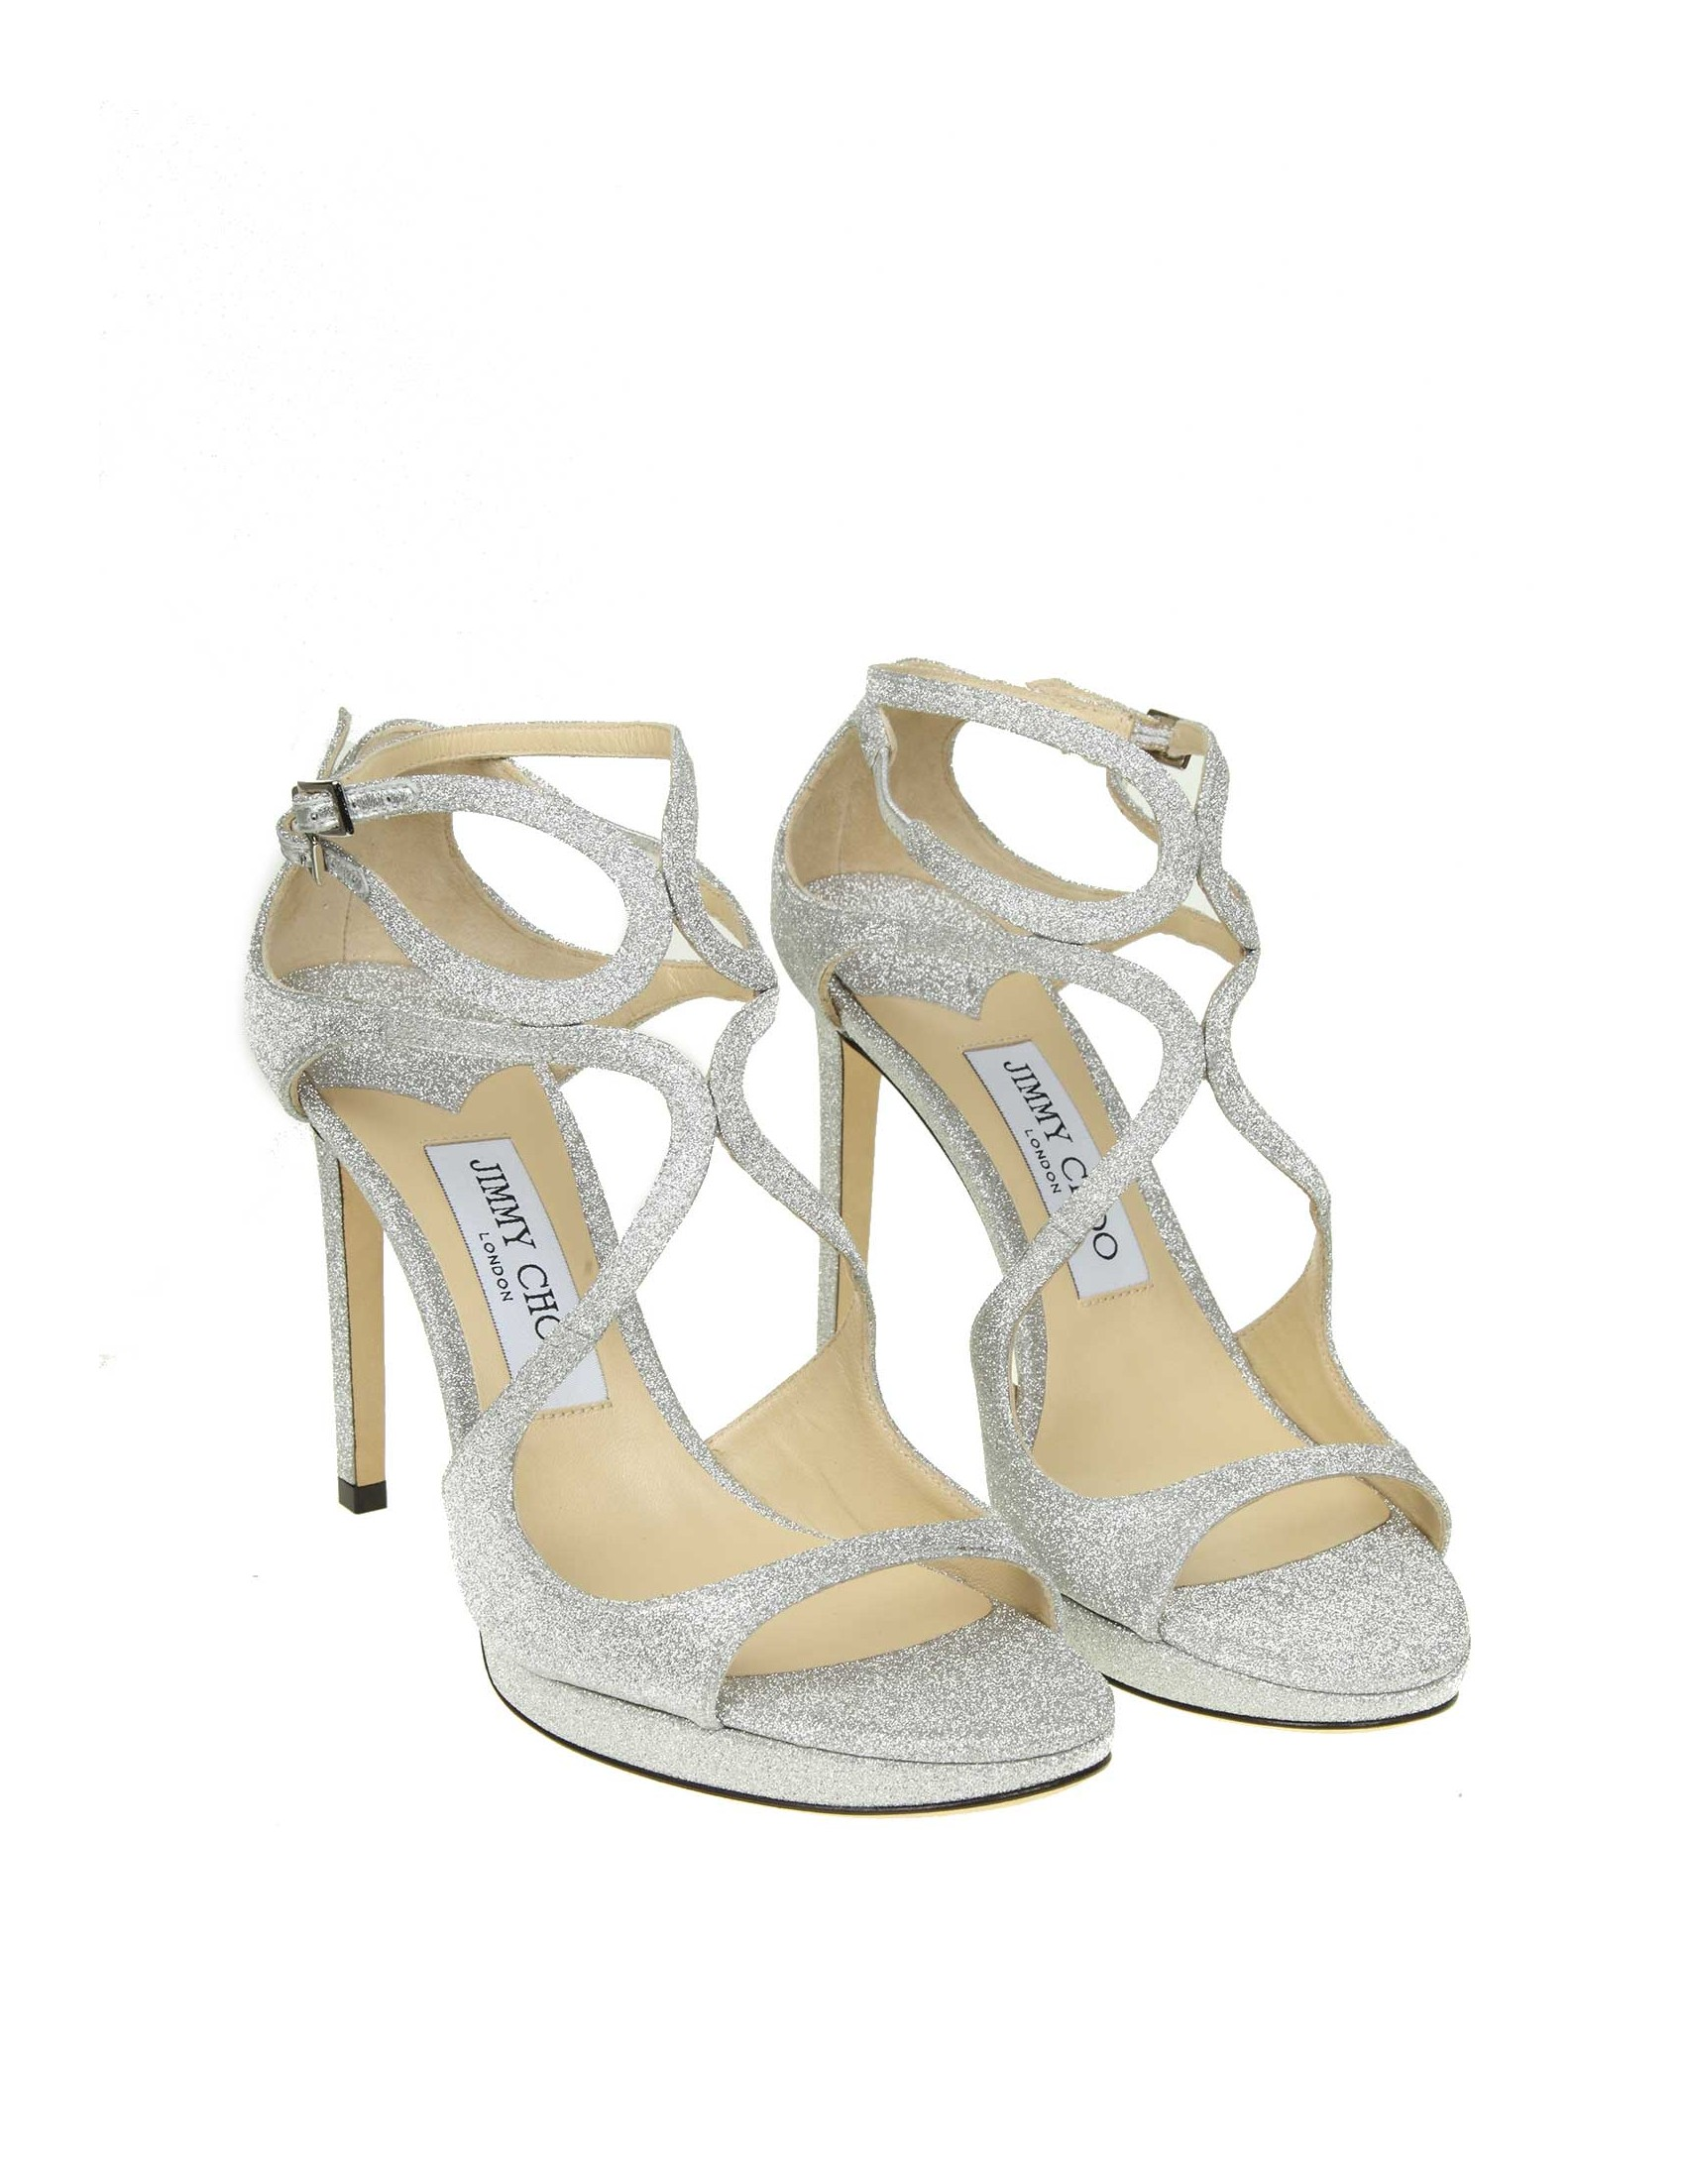 new style 63e5c 2b4db JIMMY CHOO LACE 100 SANDAL IN SILVER COLOR GLITTERY FABRIC